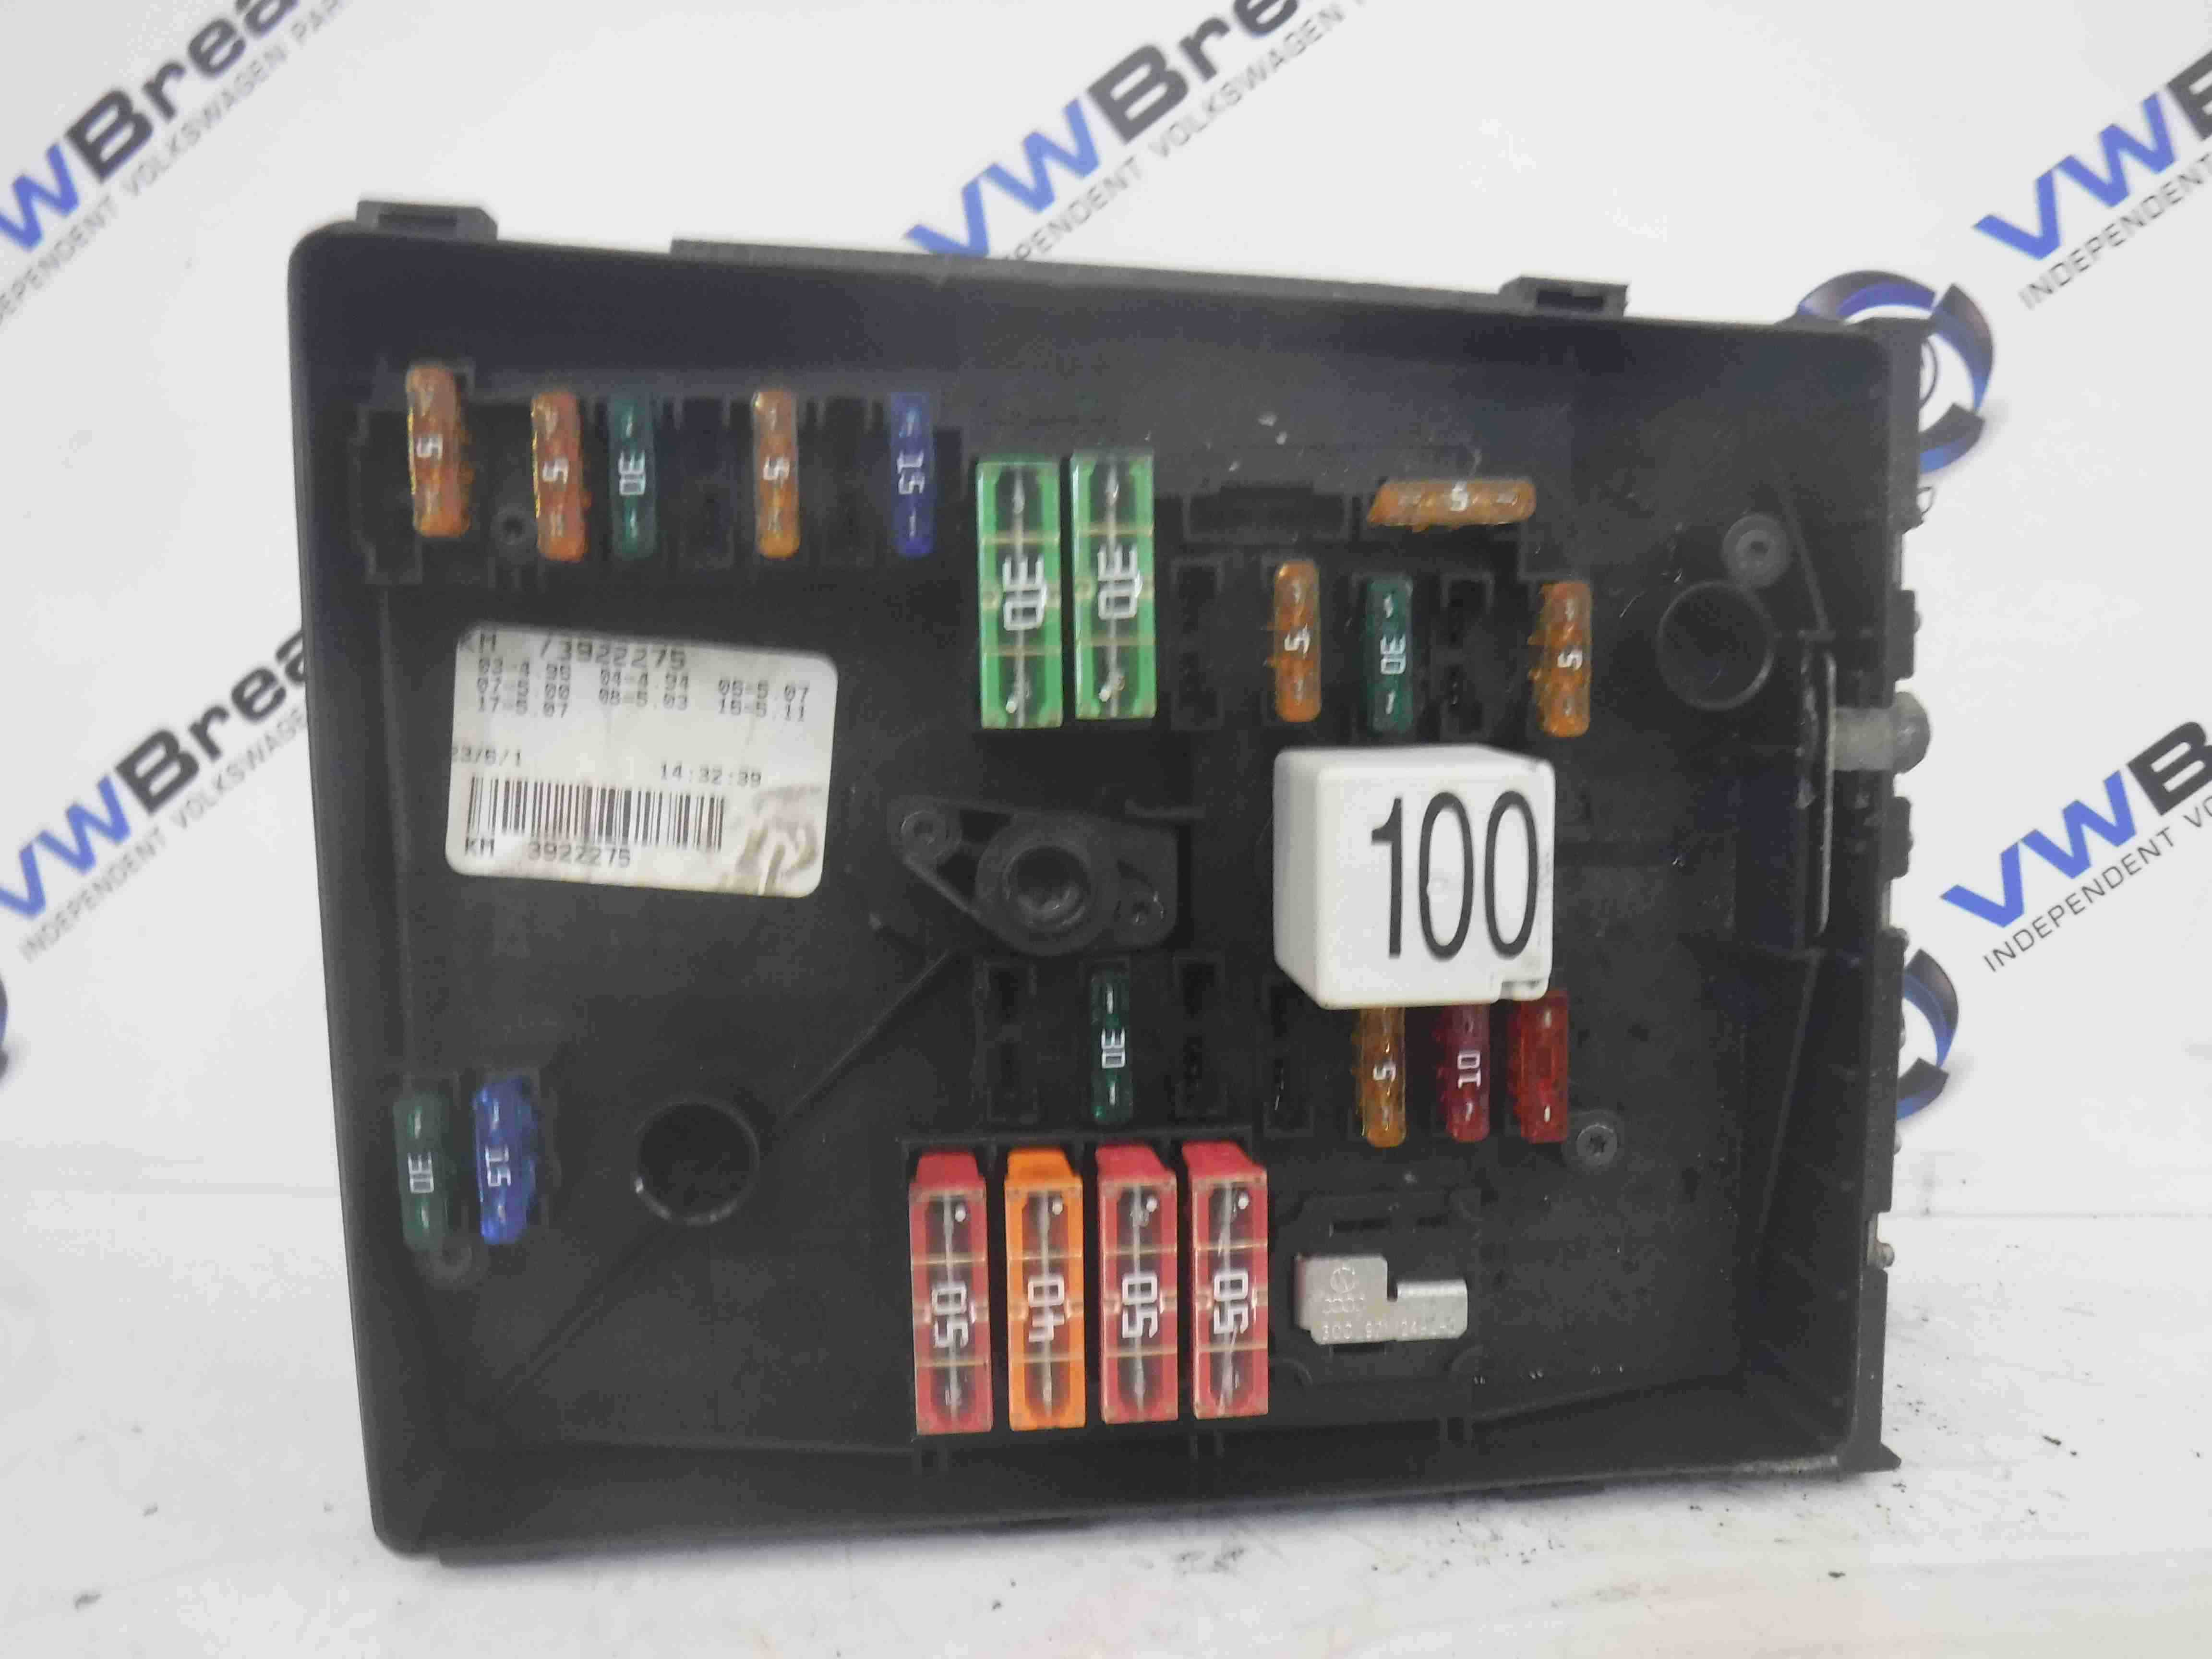 Volkswagen Jetta A5 2005-2011 Engine Bay Fuse Box Relay